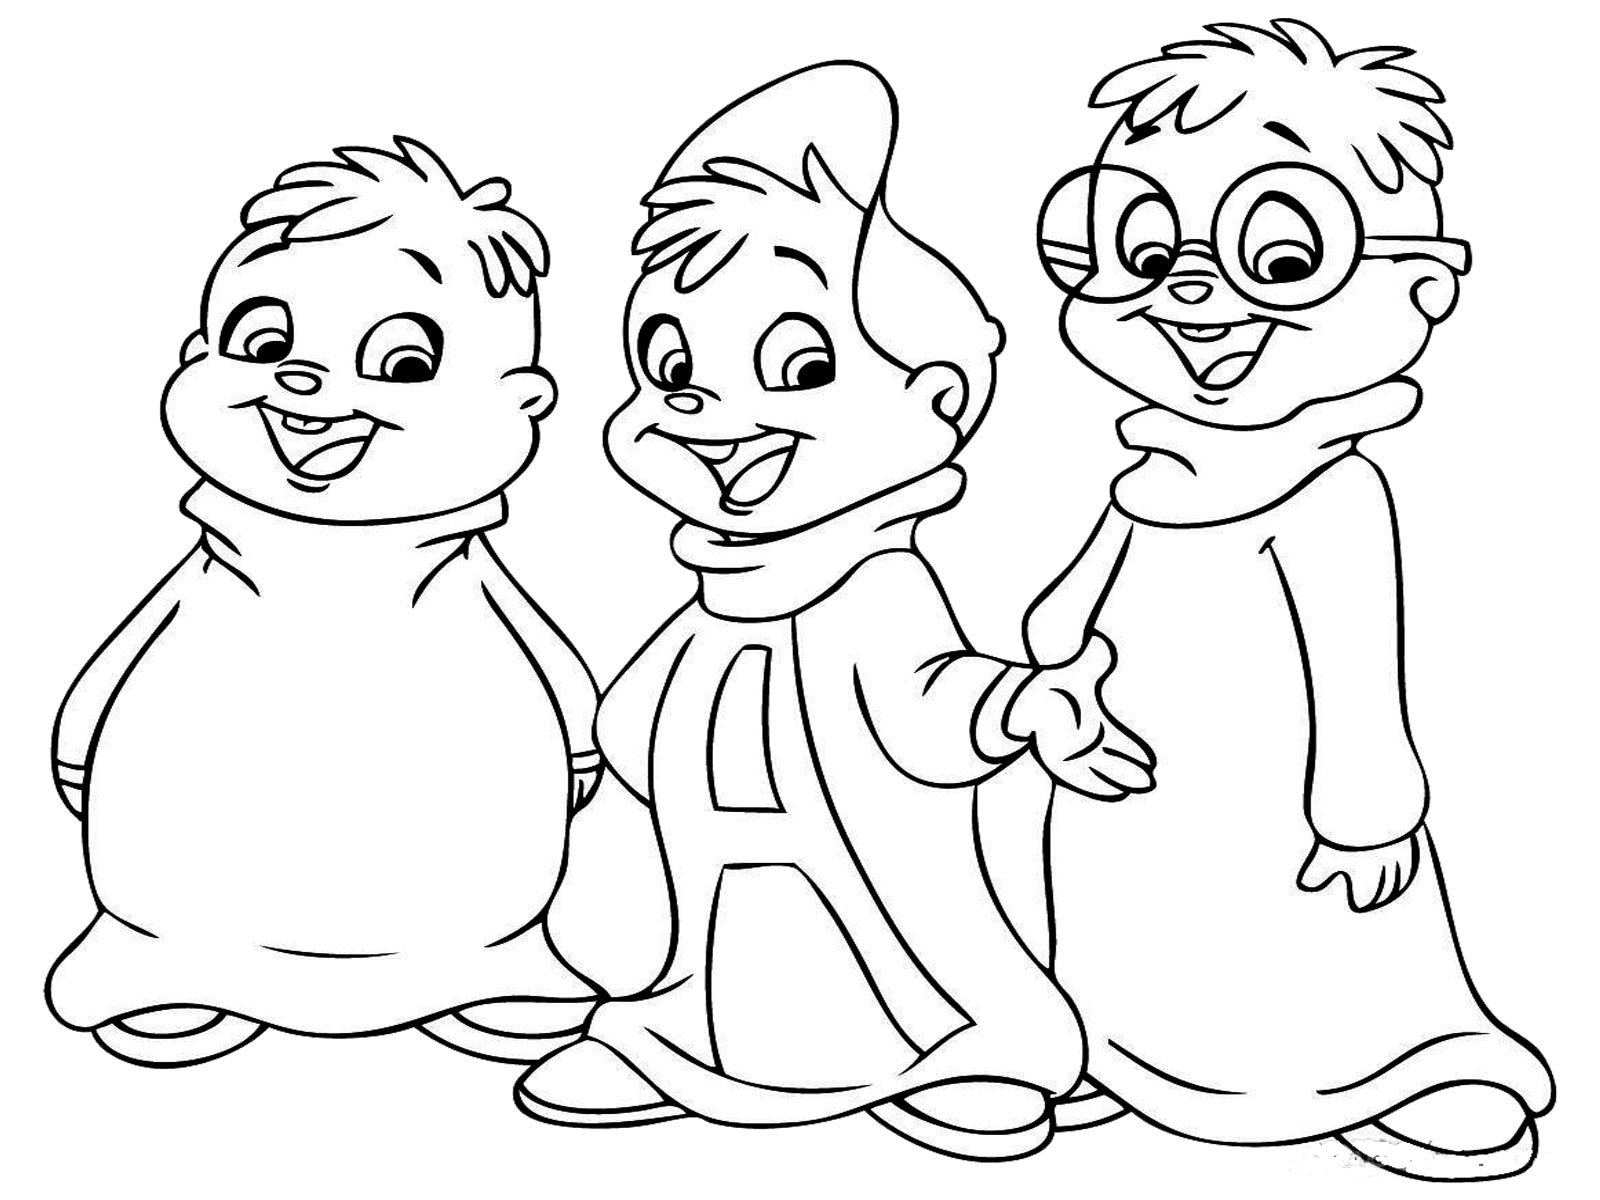 chipmunks coloring pages printable - photo#35